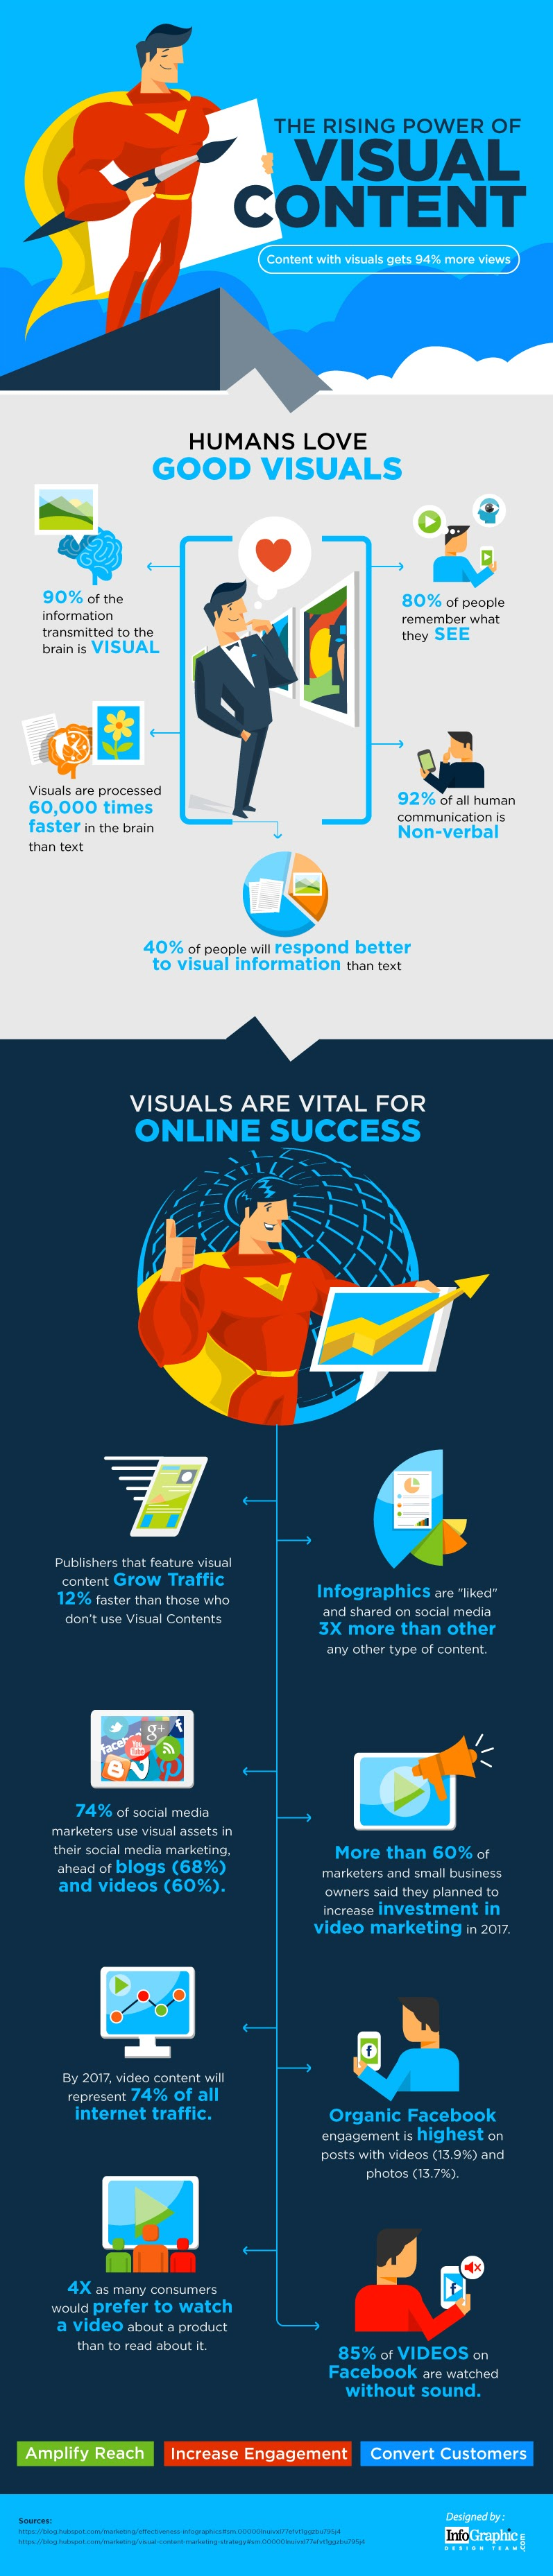 The Rising Power of Visual Content - #infographic